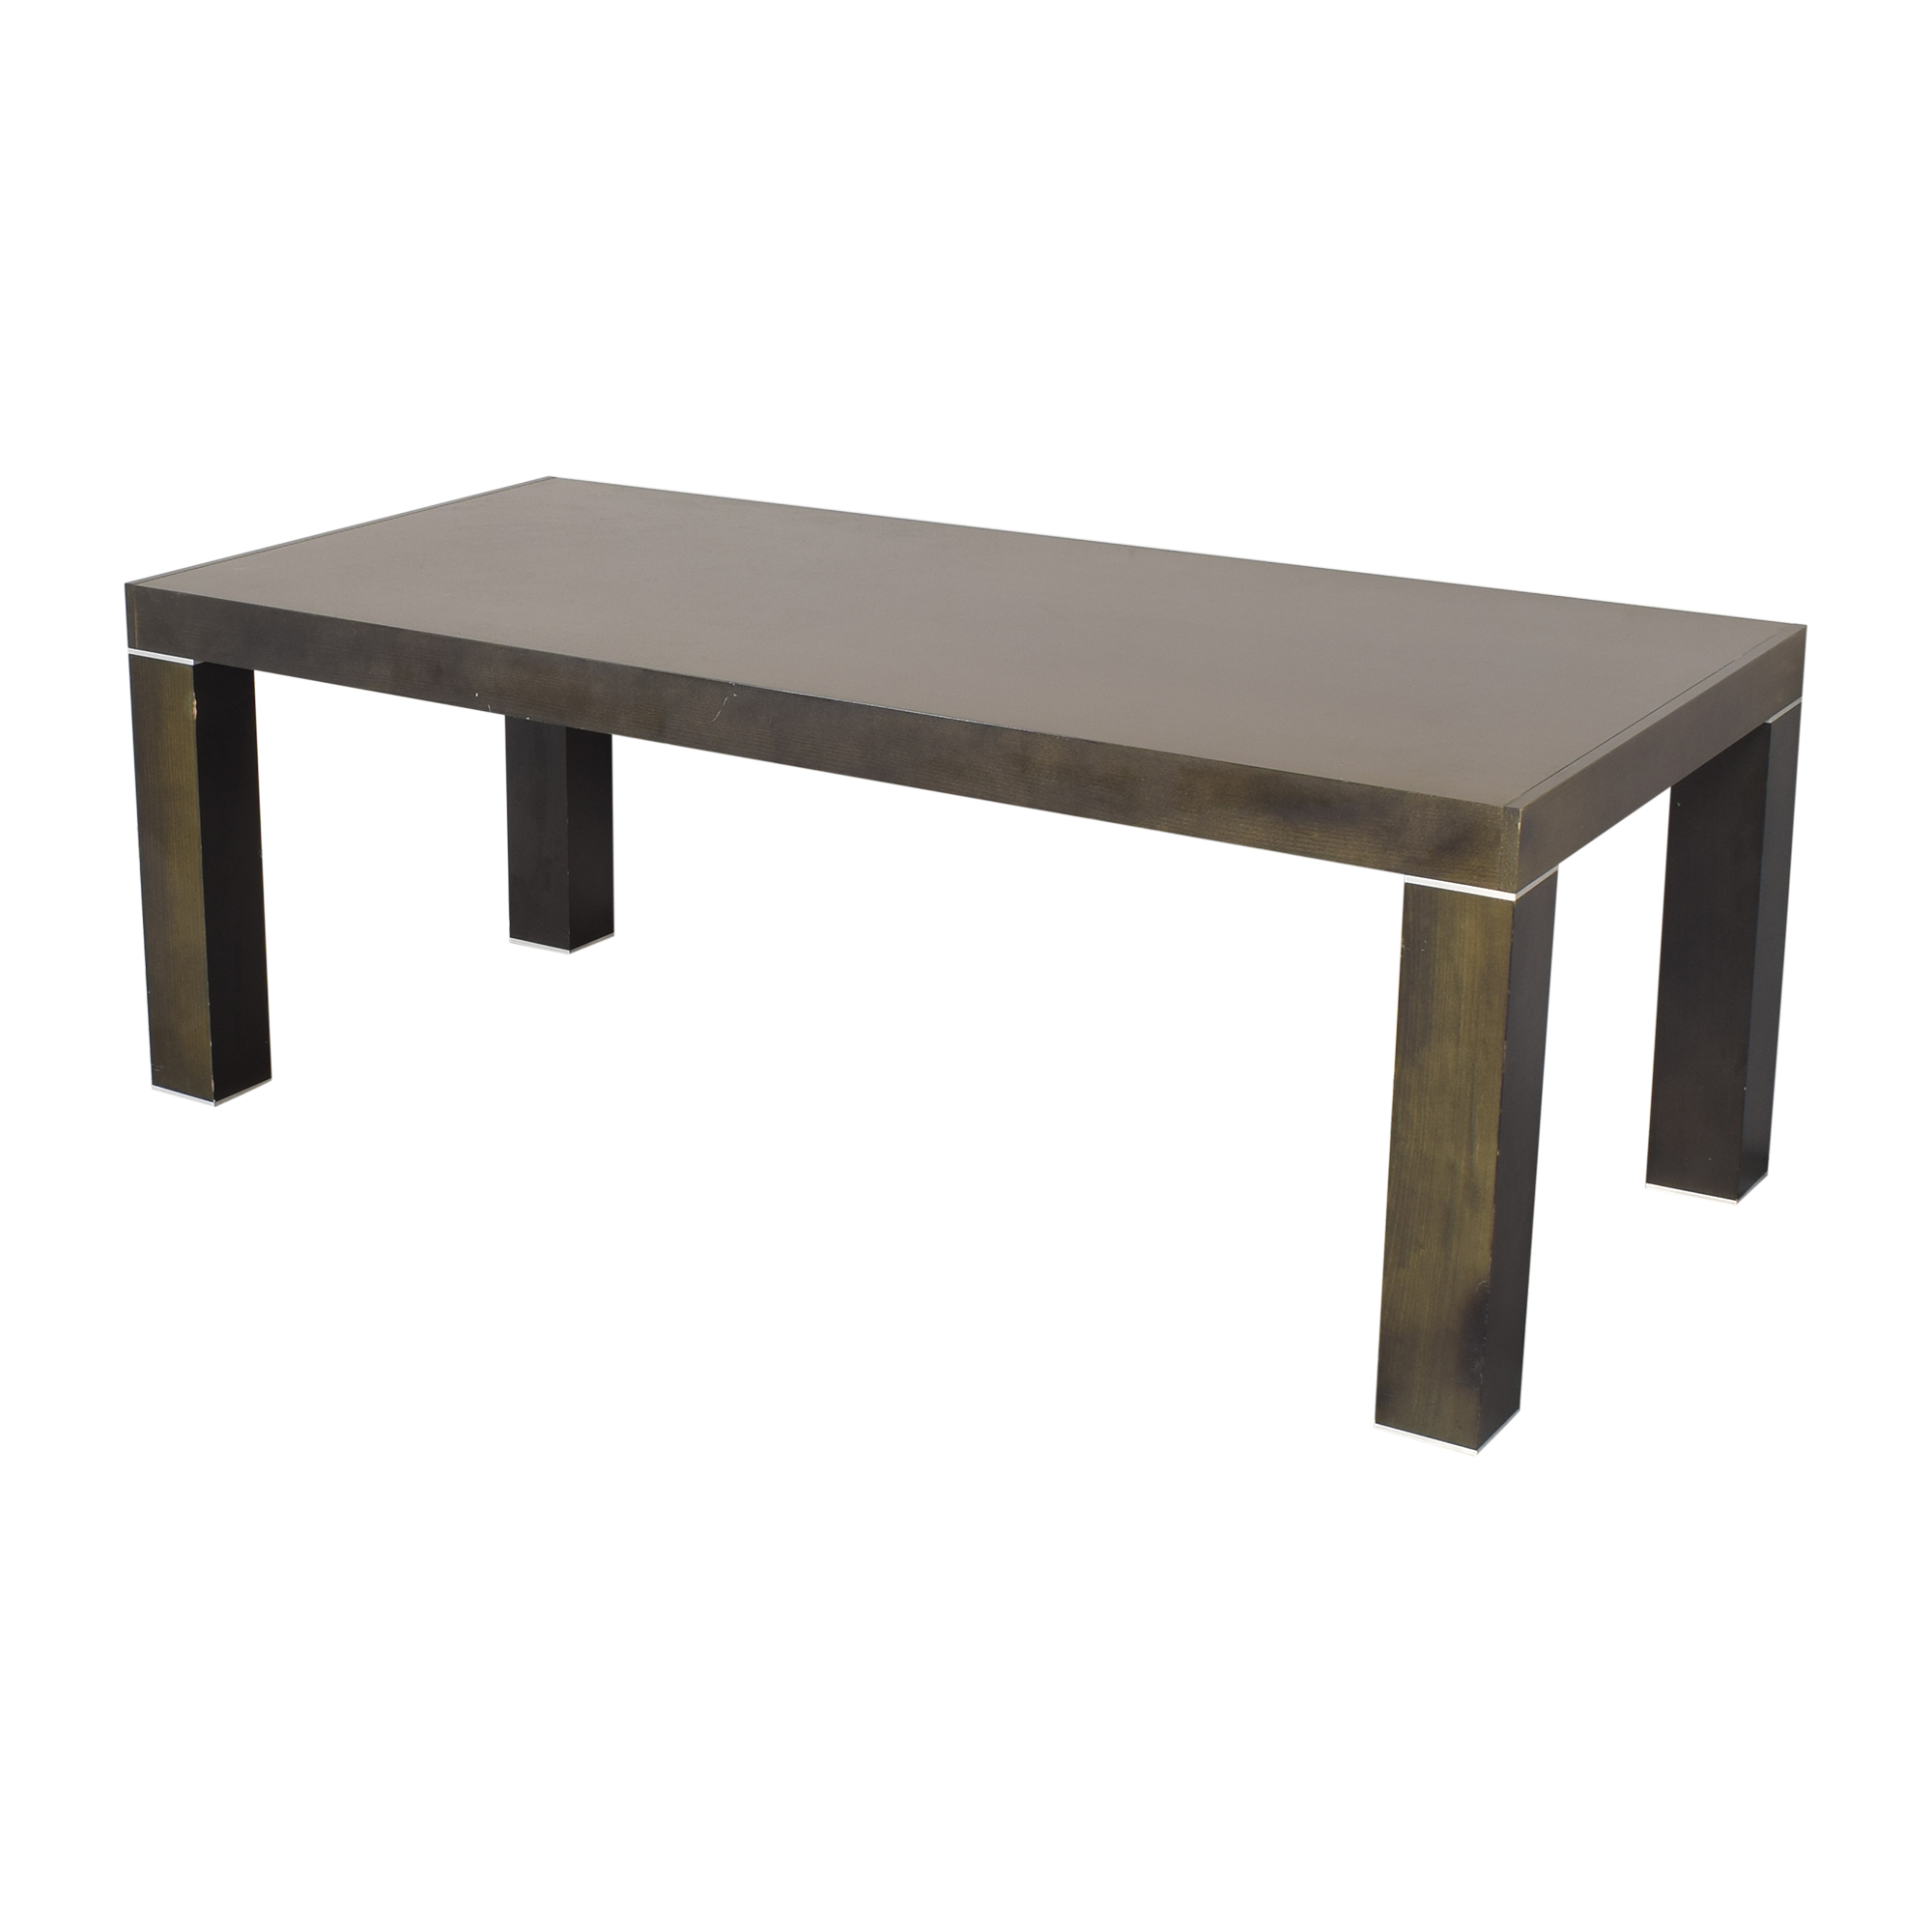 Roche Bobois Roche Bobois Rectangular Dining Table discount